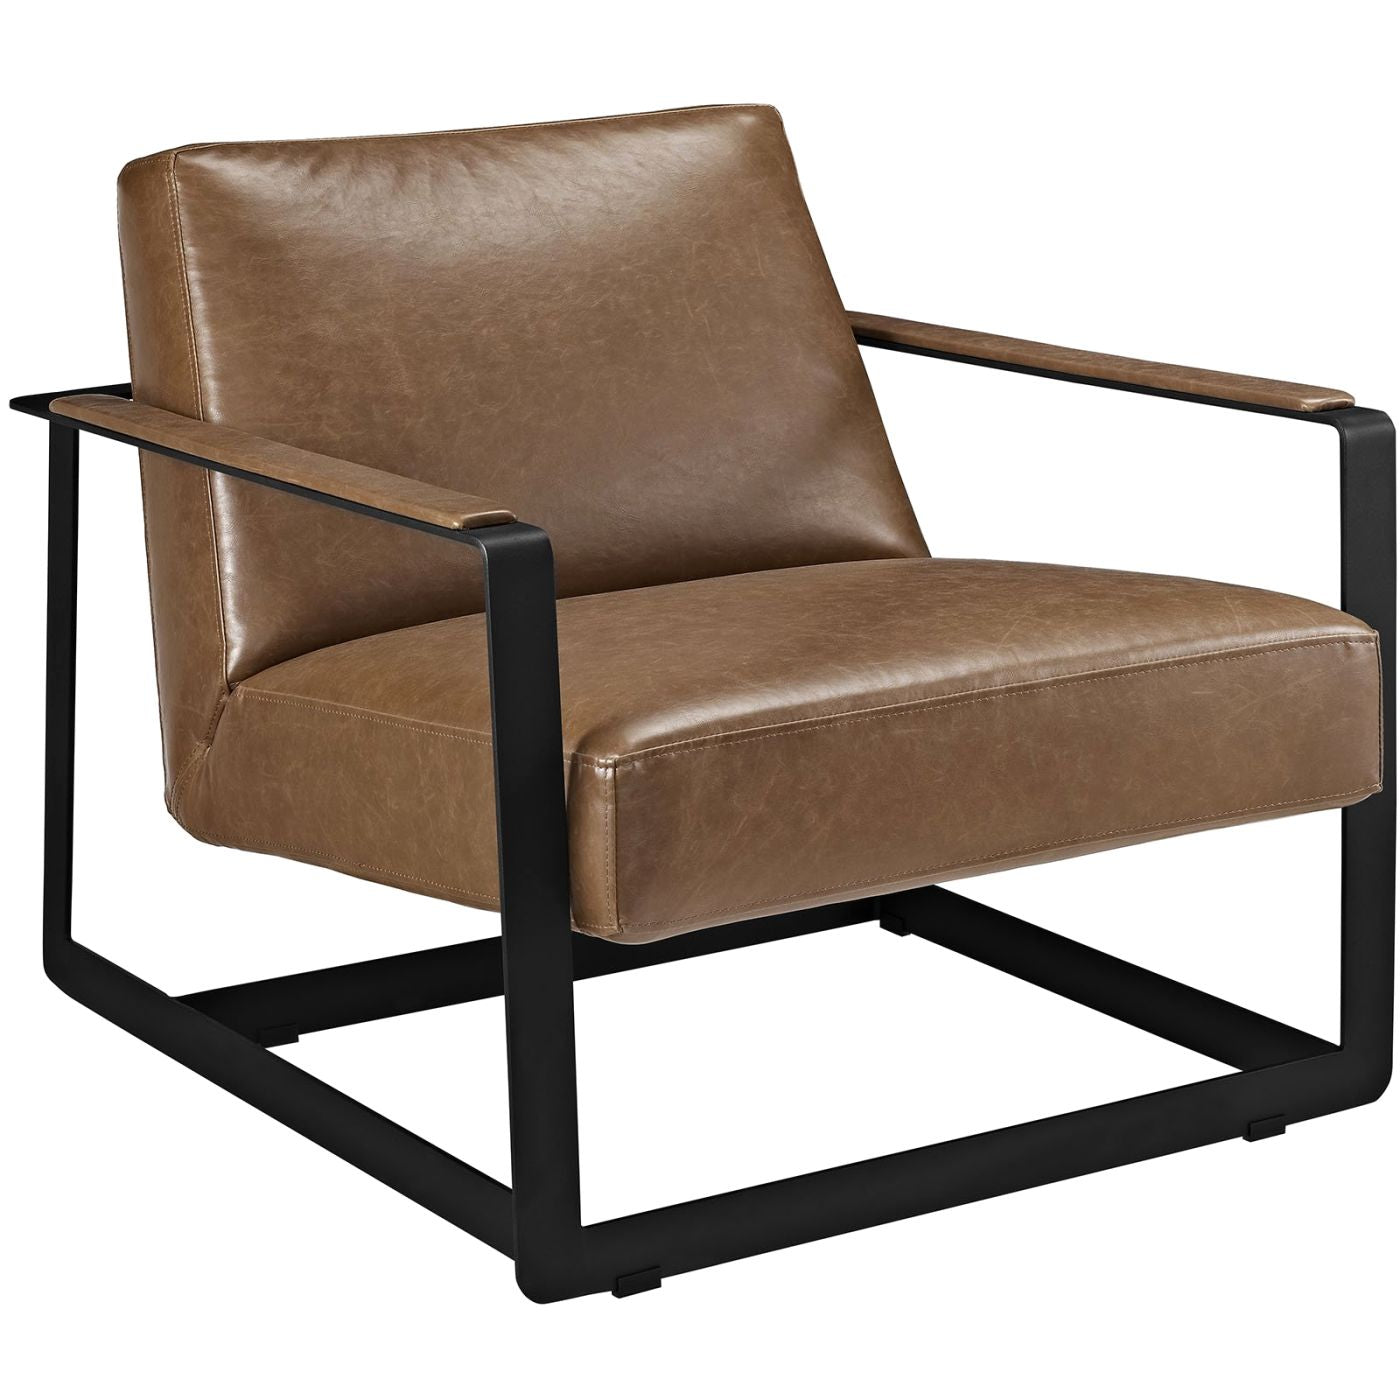 Surprising Modway Armchairs On Sale Eei 2075 Brn Seg Upholstered Faux Leather Accent Chair Brown Only Only 619 80 At Contemporary Furniture Warehouse Creativecarmelina Interior Chair Design Creativecarmelinacom